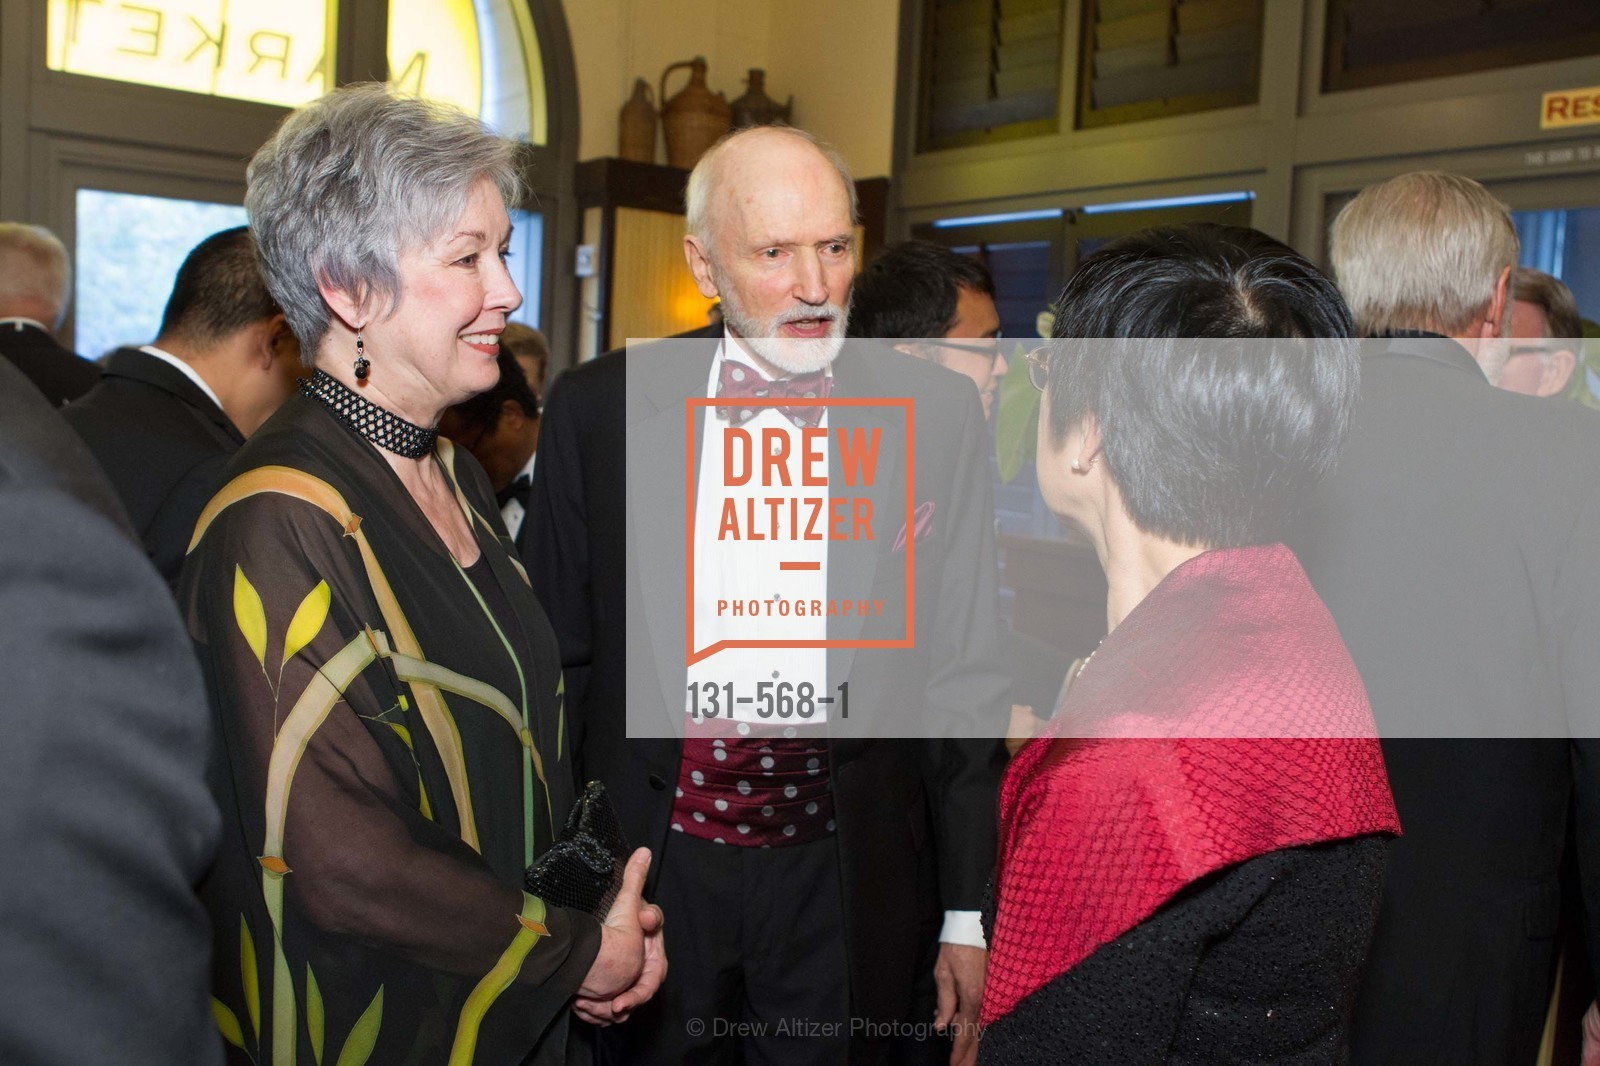 Jennifer Beckett, Bill Fuller, Nancy Yuen, SOTHEBY'S  Hosts a Private Viewing of Highlights from the Collection of MRS. PAUL MELLON, US, September 17th, 2014,Drew Altizer, Drew Altizer Photography, full-service agency, private events, San Francisco photographer, photographer california